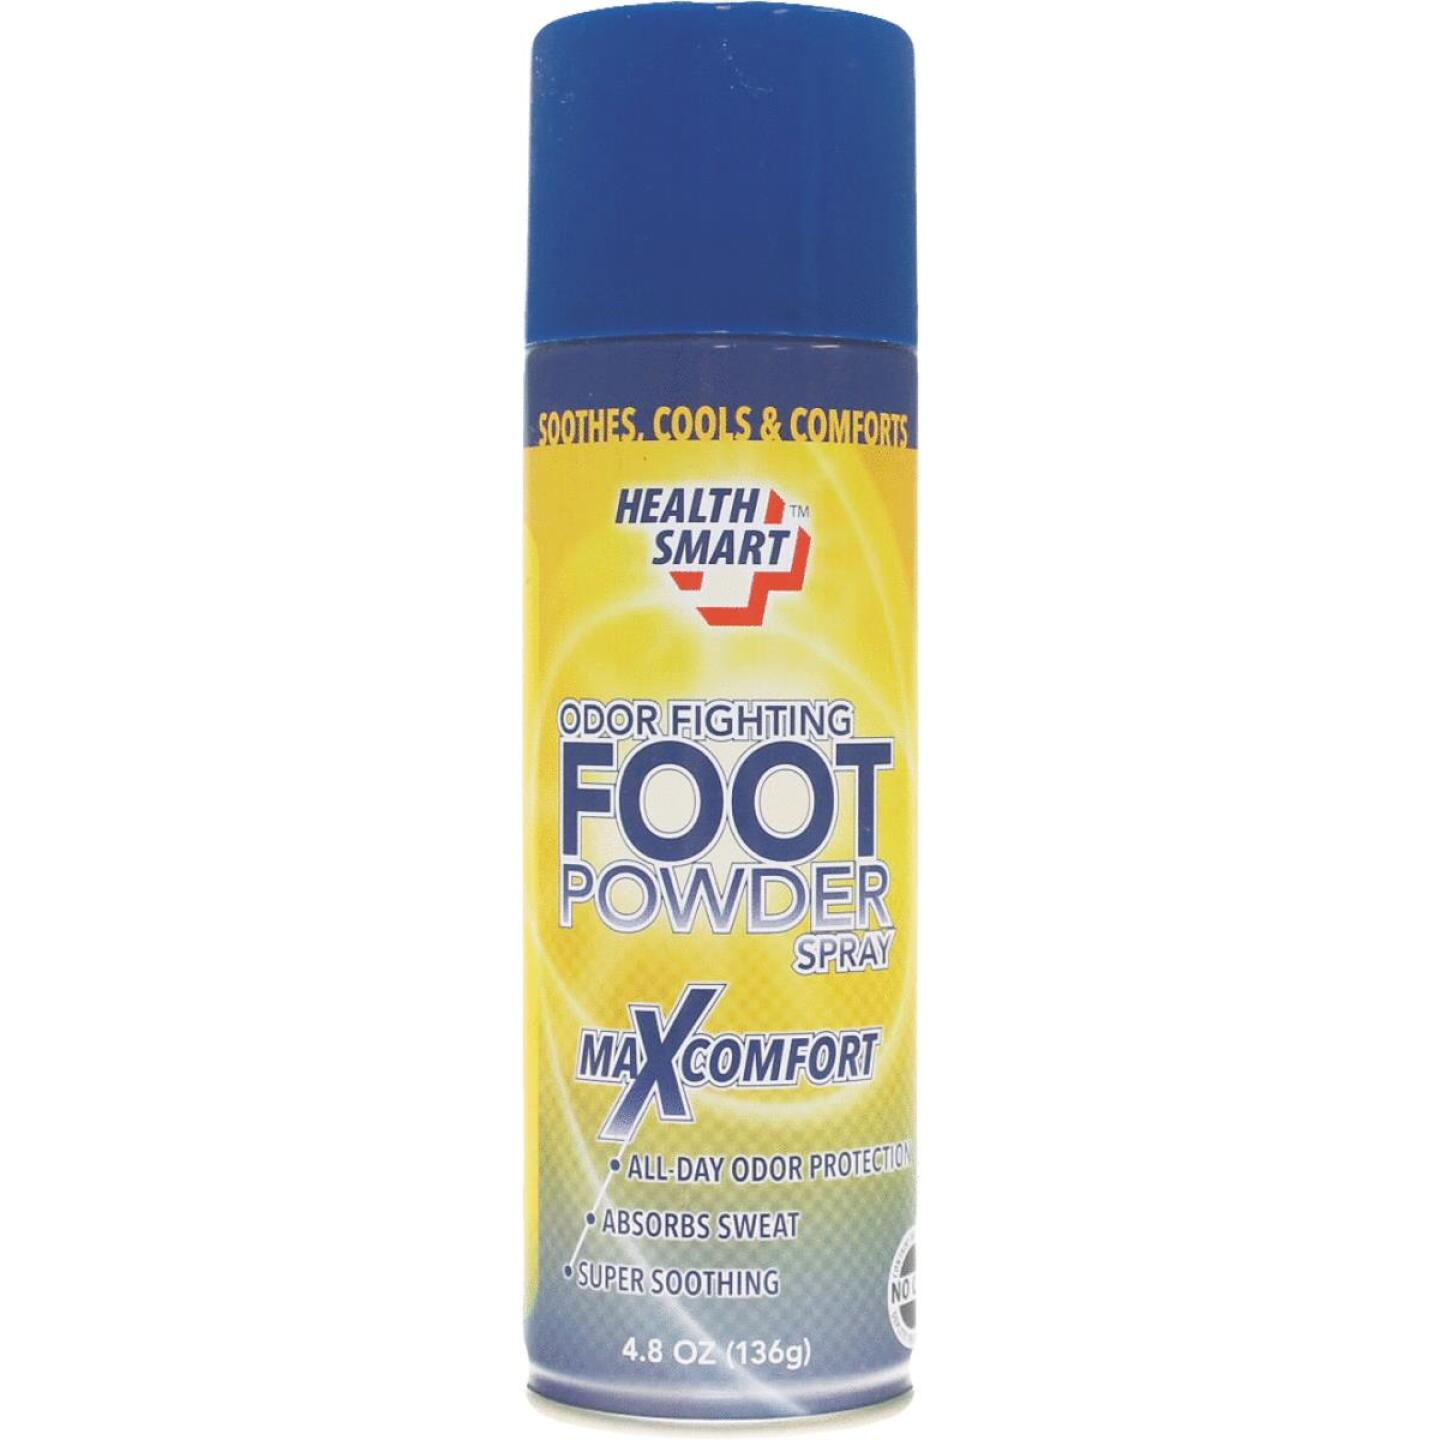 Health Smart 4.8 Oz. Odor Fighting Foot Powder Spray Image 1